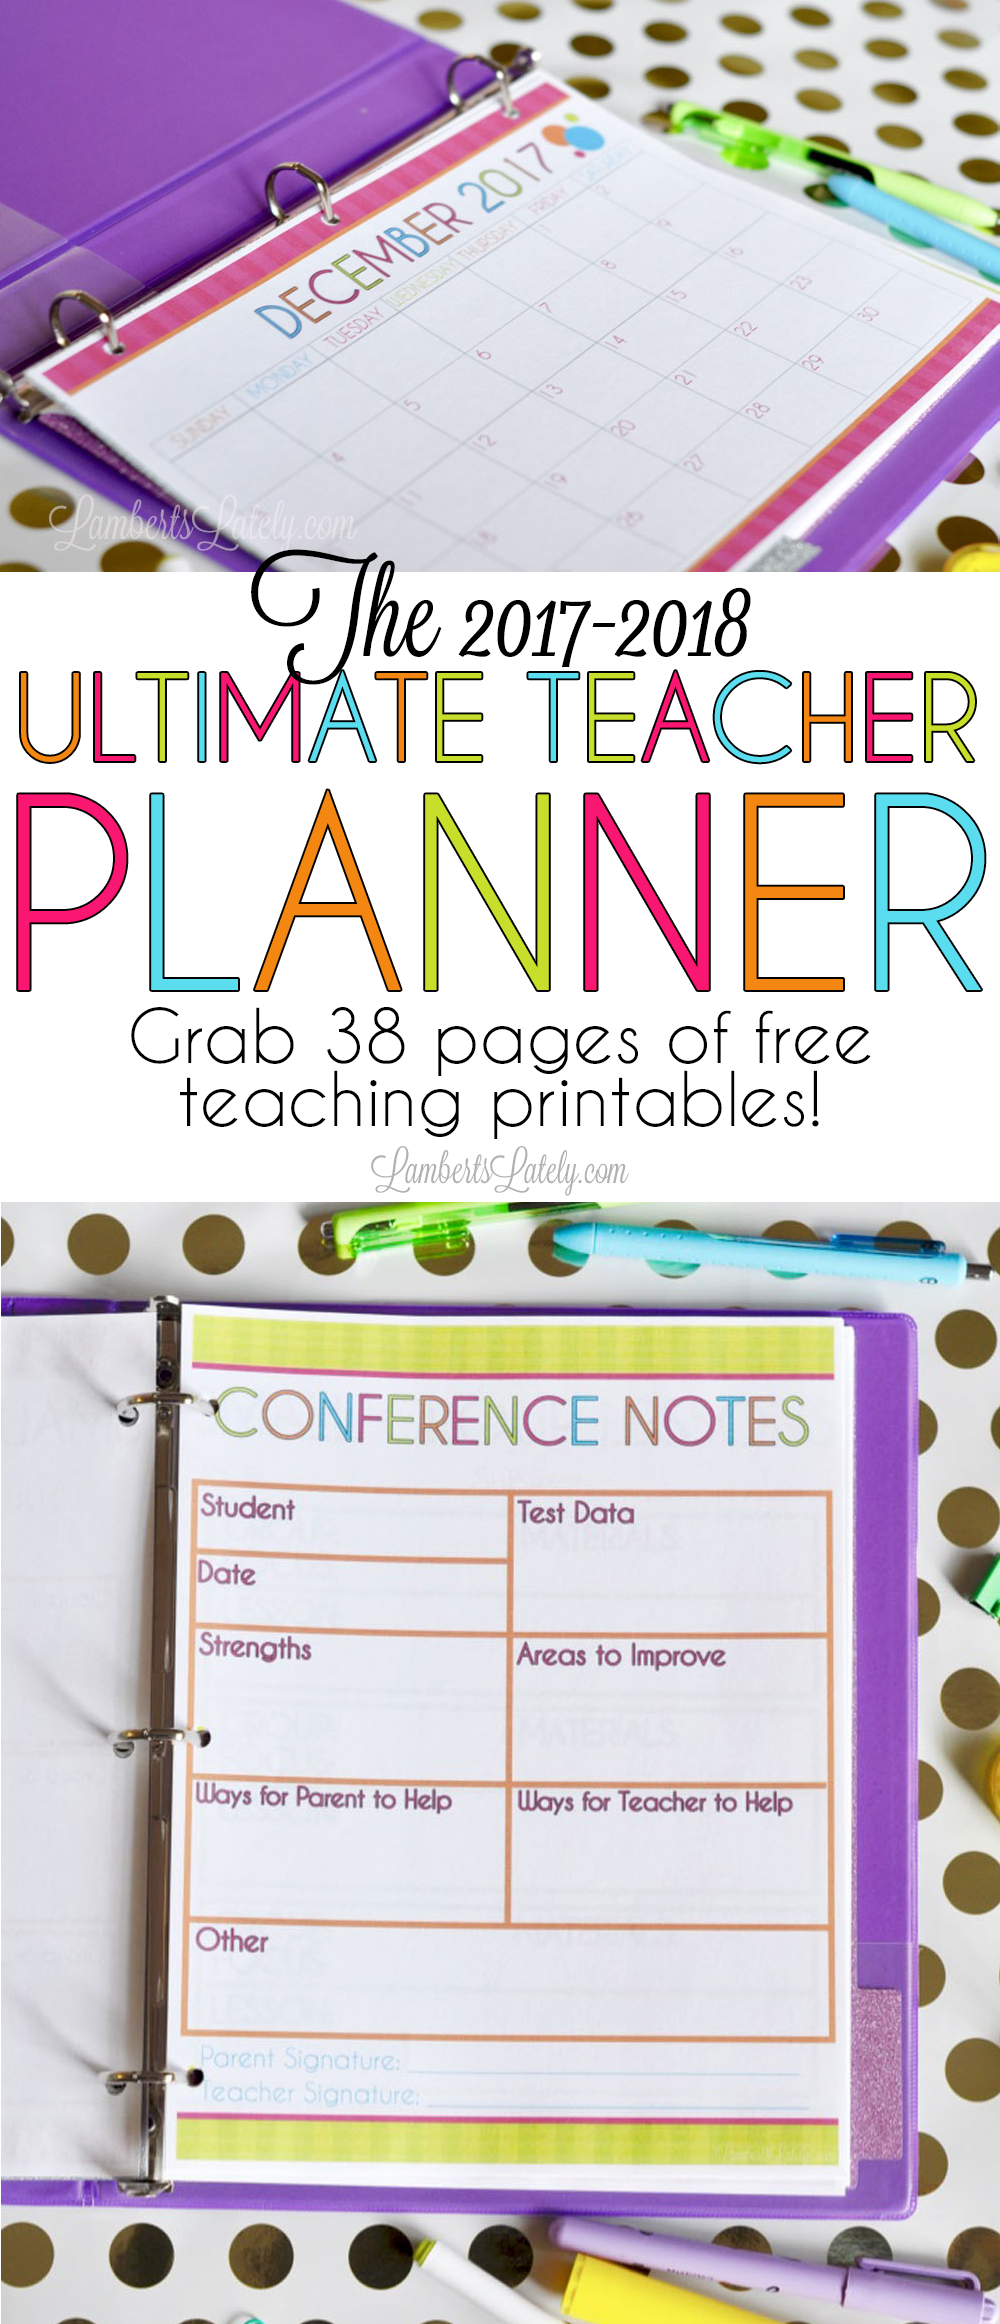 The 2017-2018 Ultimate Teacher Planner | Awesome Printables ...